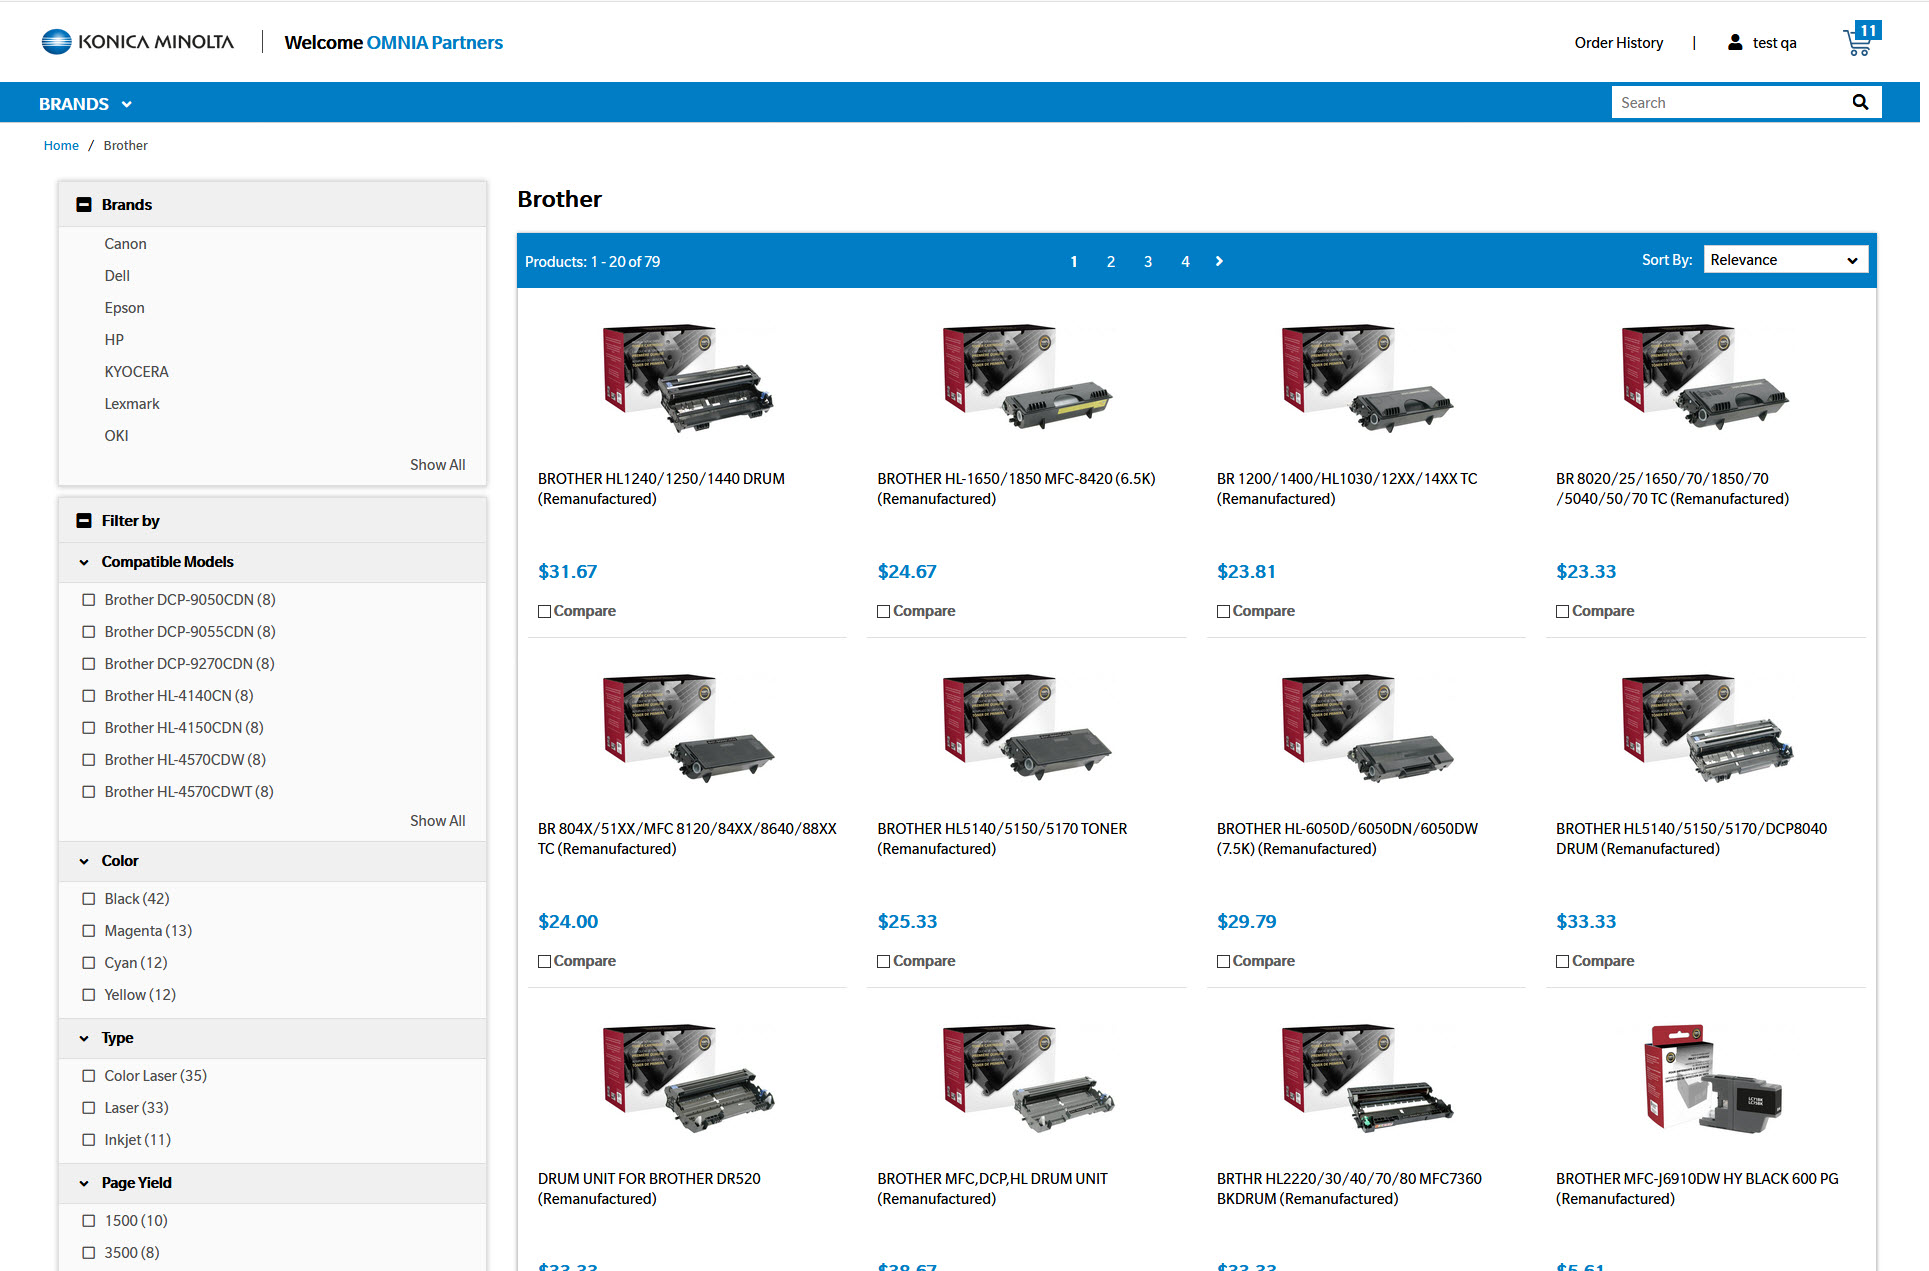 Konica Minolta relies on IO to deliver new commerce website